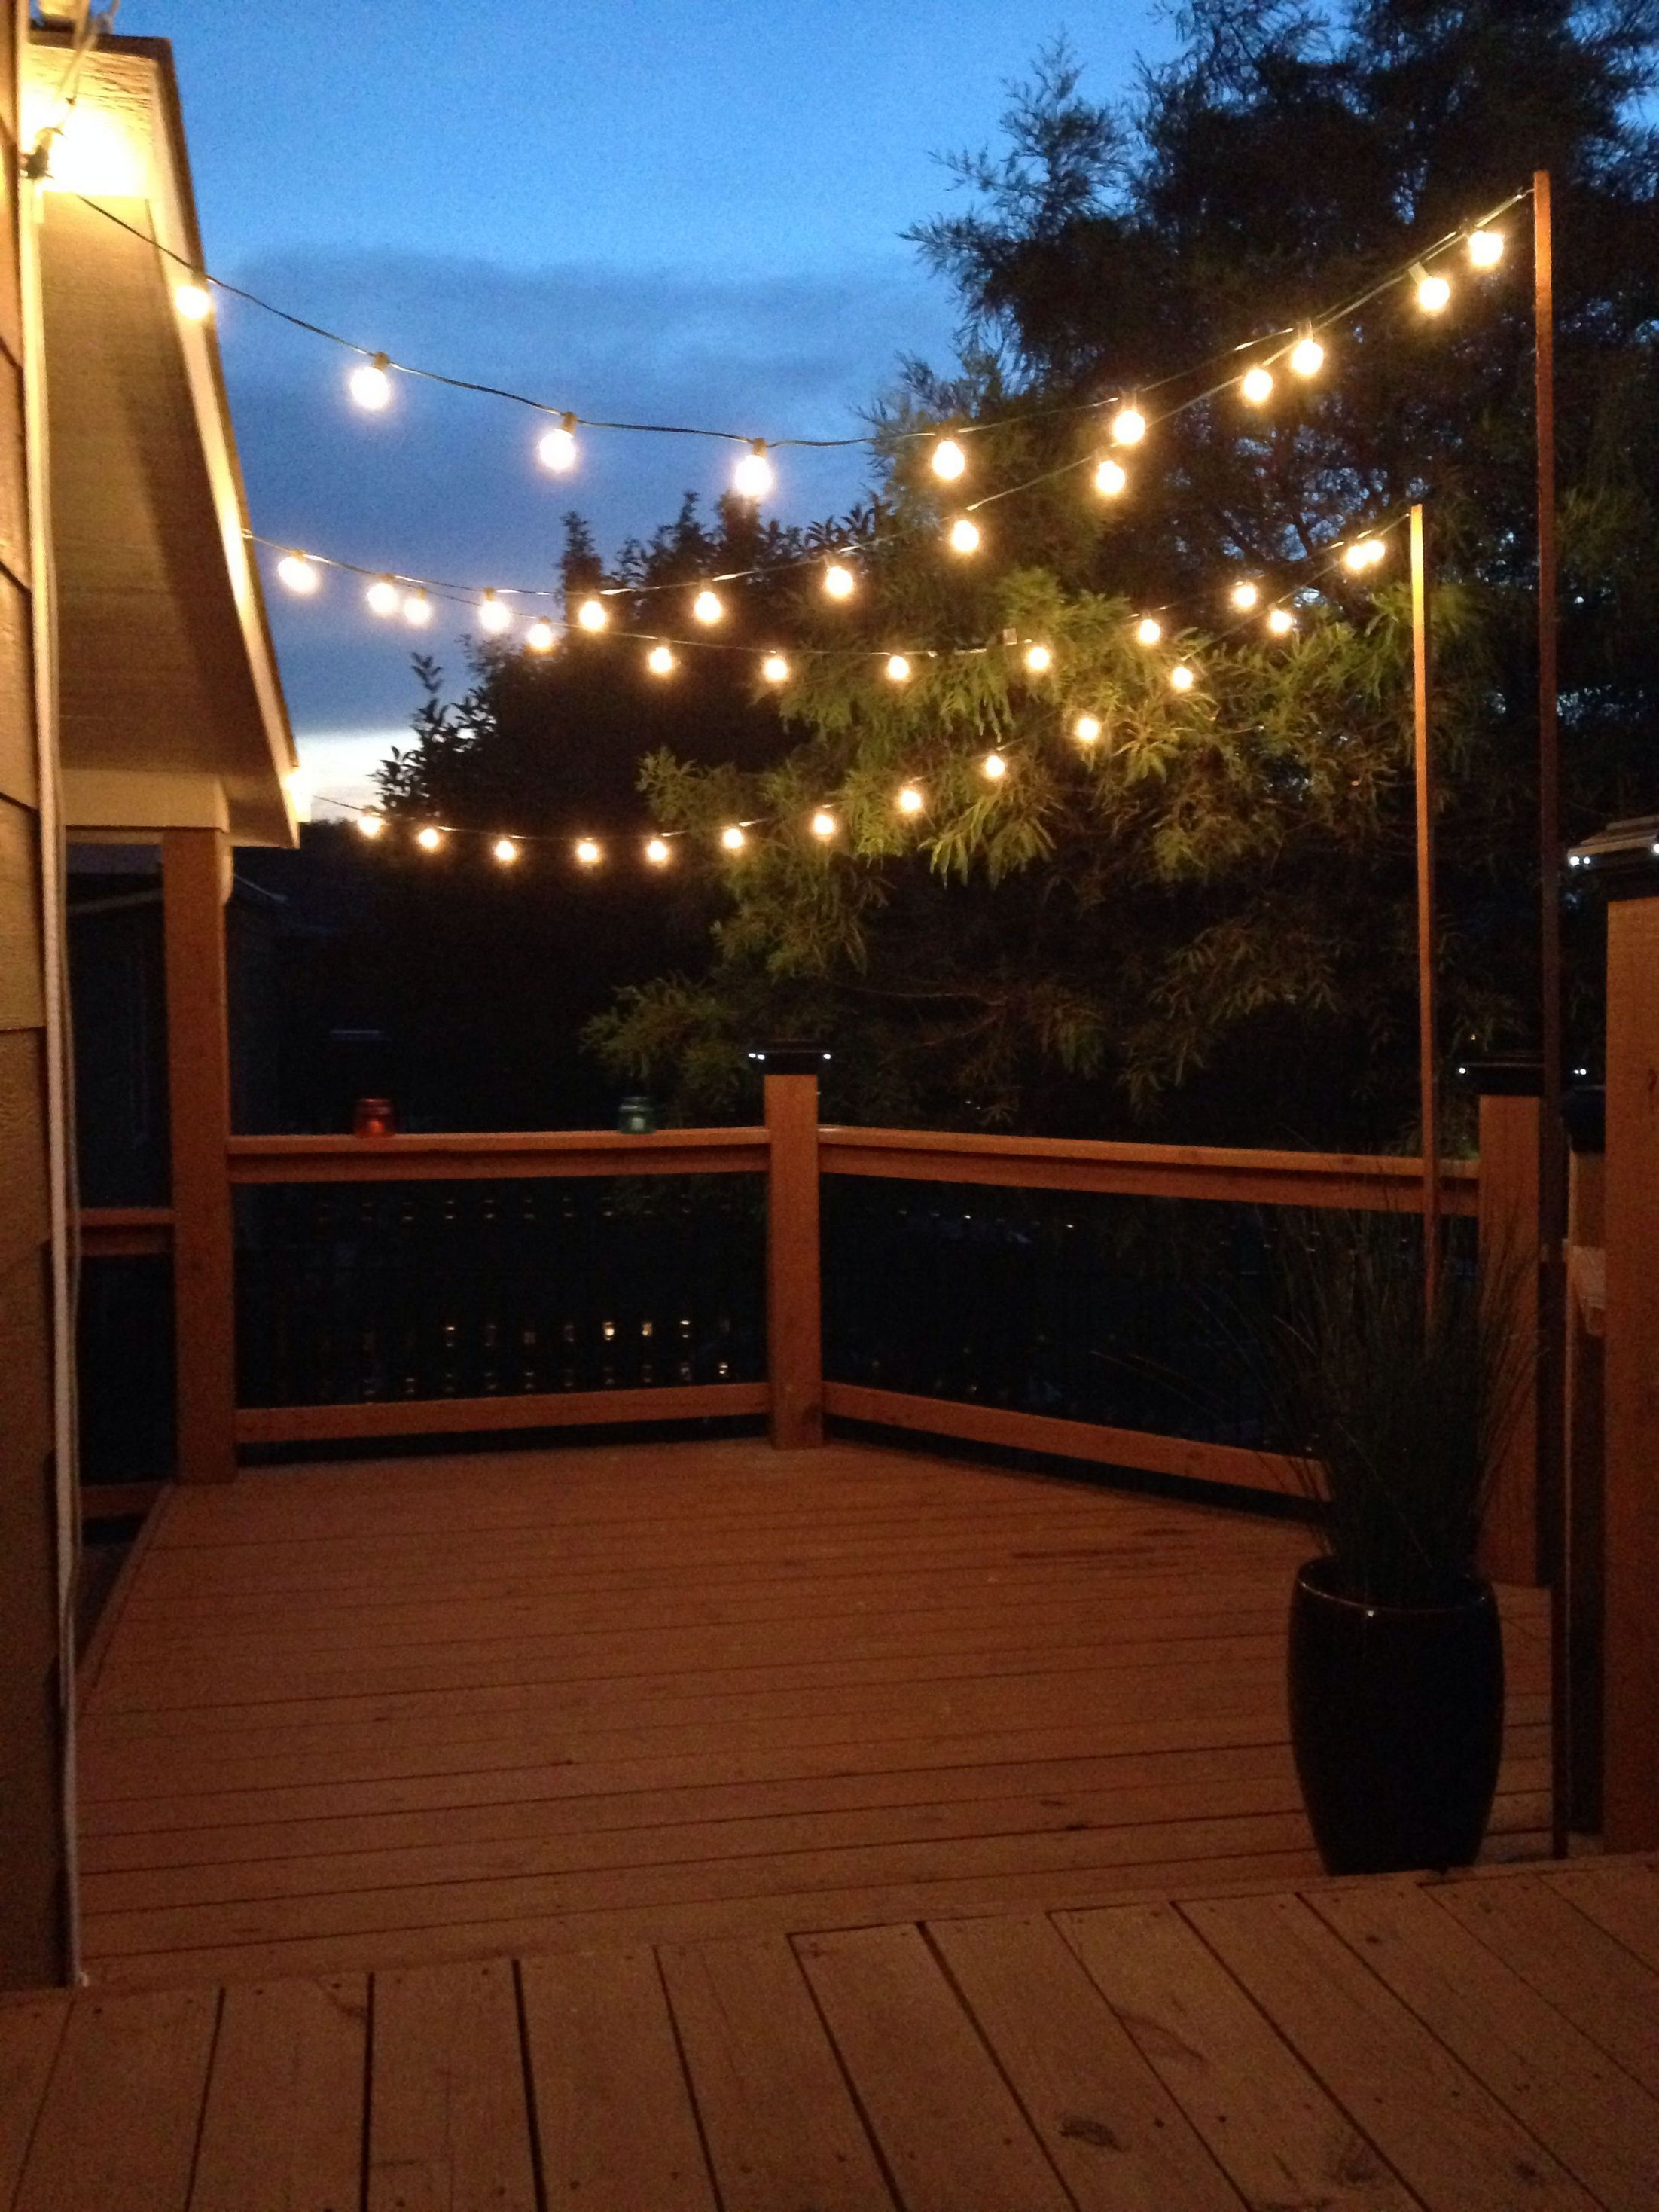 20 Beautiful Lighting On The Garden Ideas Patio Deck Designs